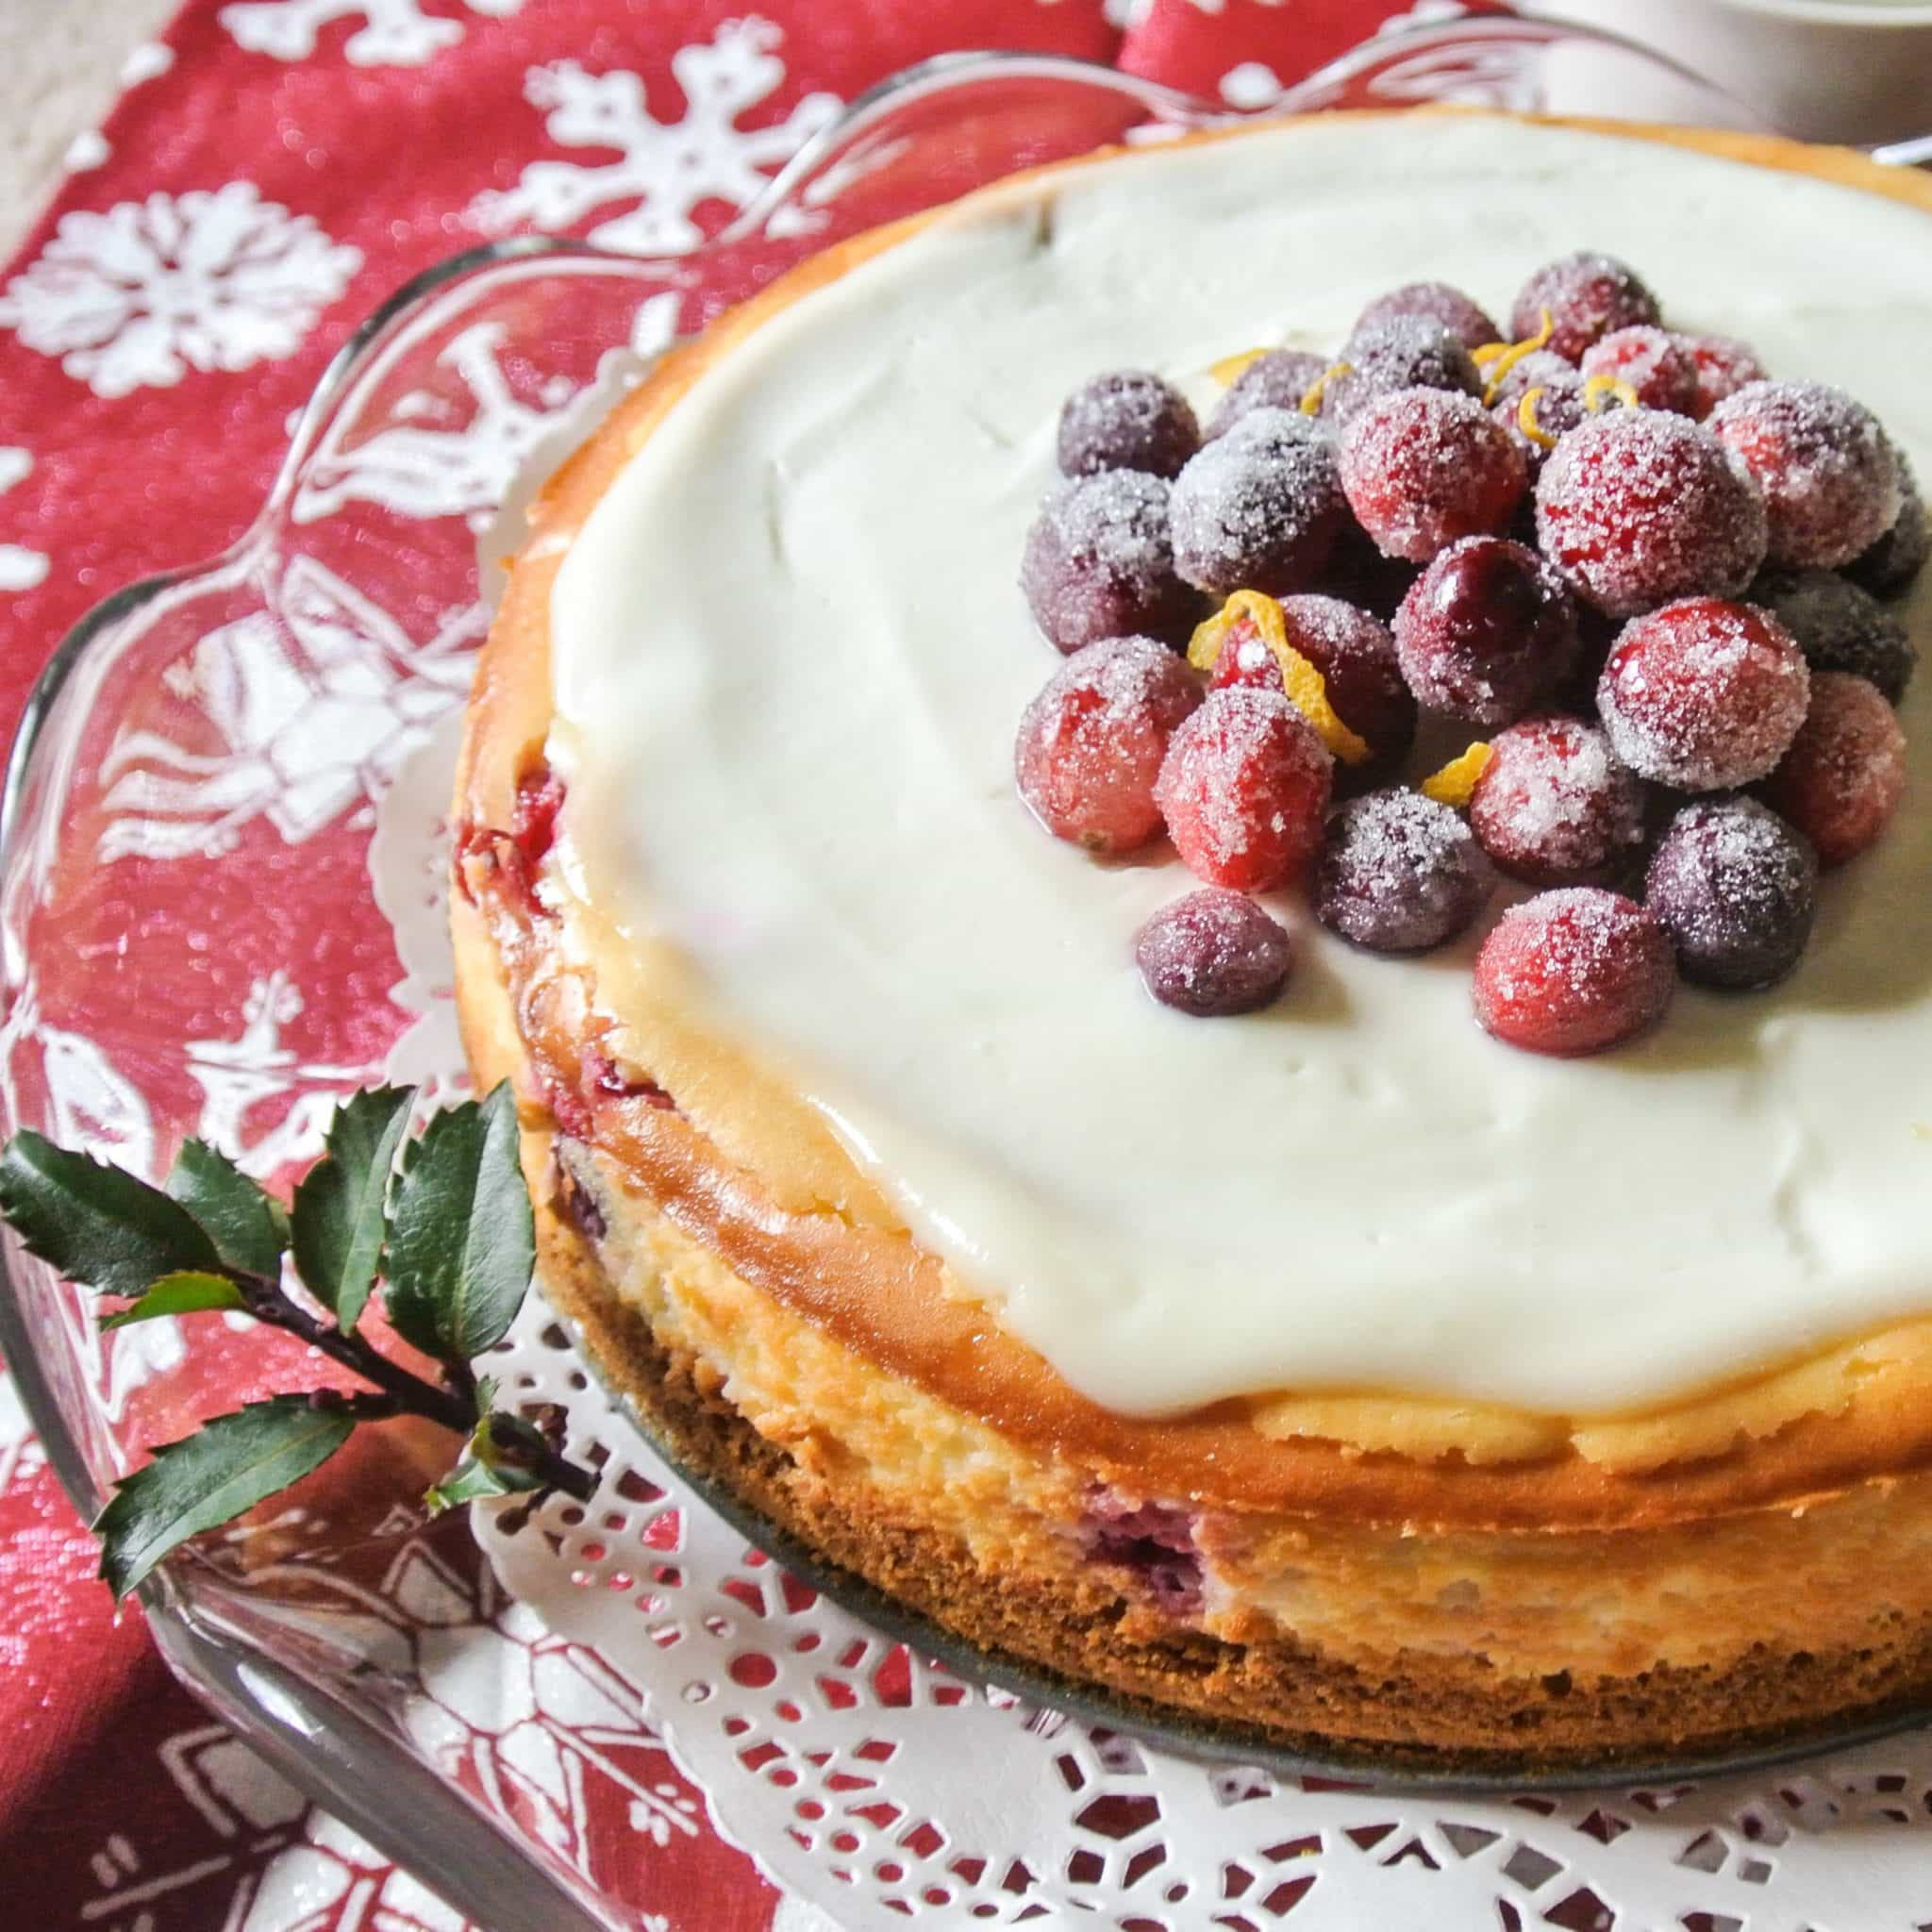 Cranberry Lemon Cheesecake with sugared cranberries